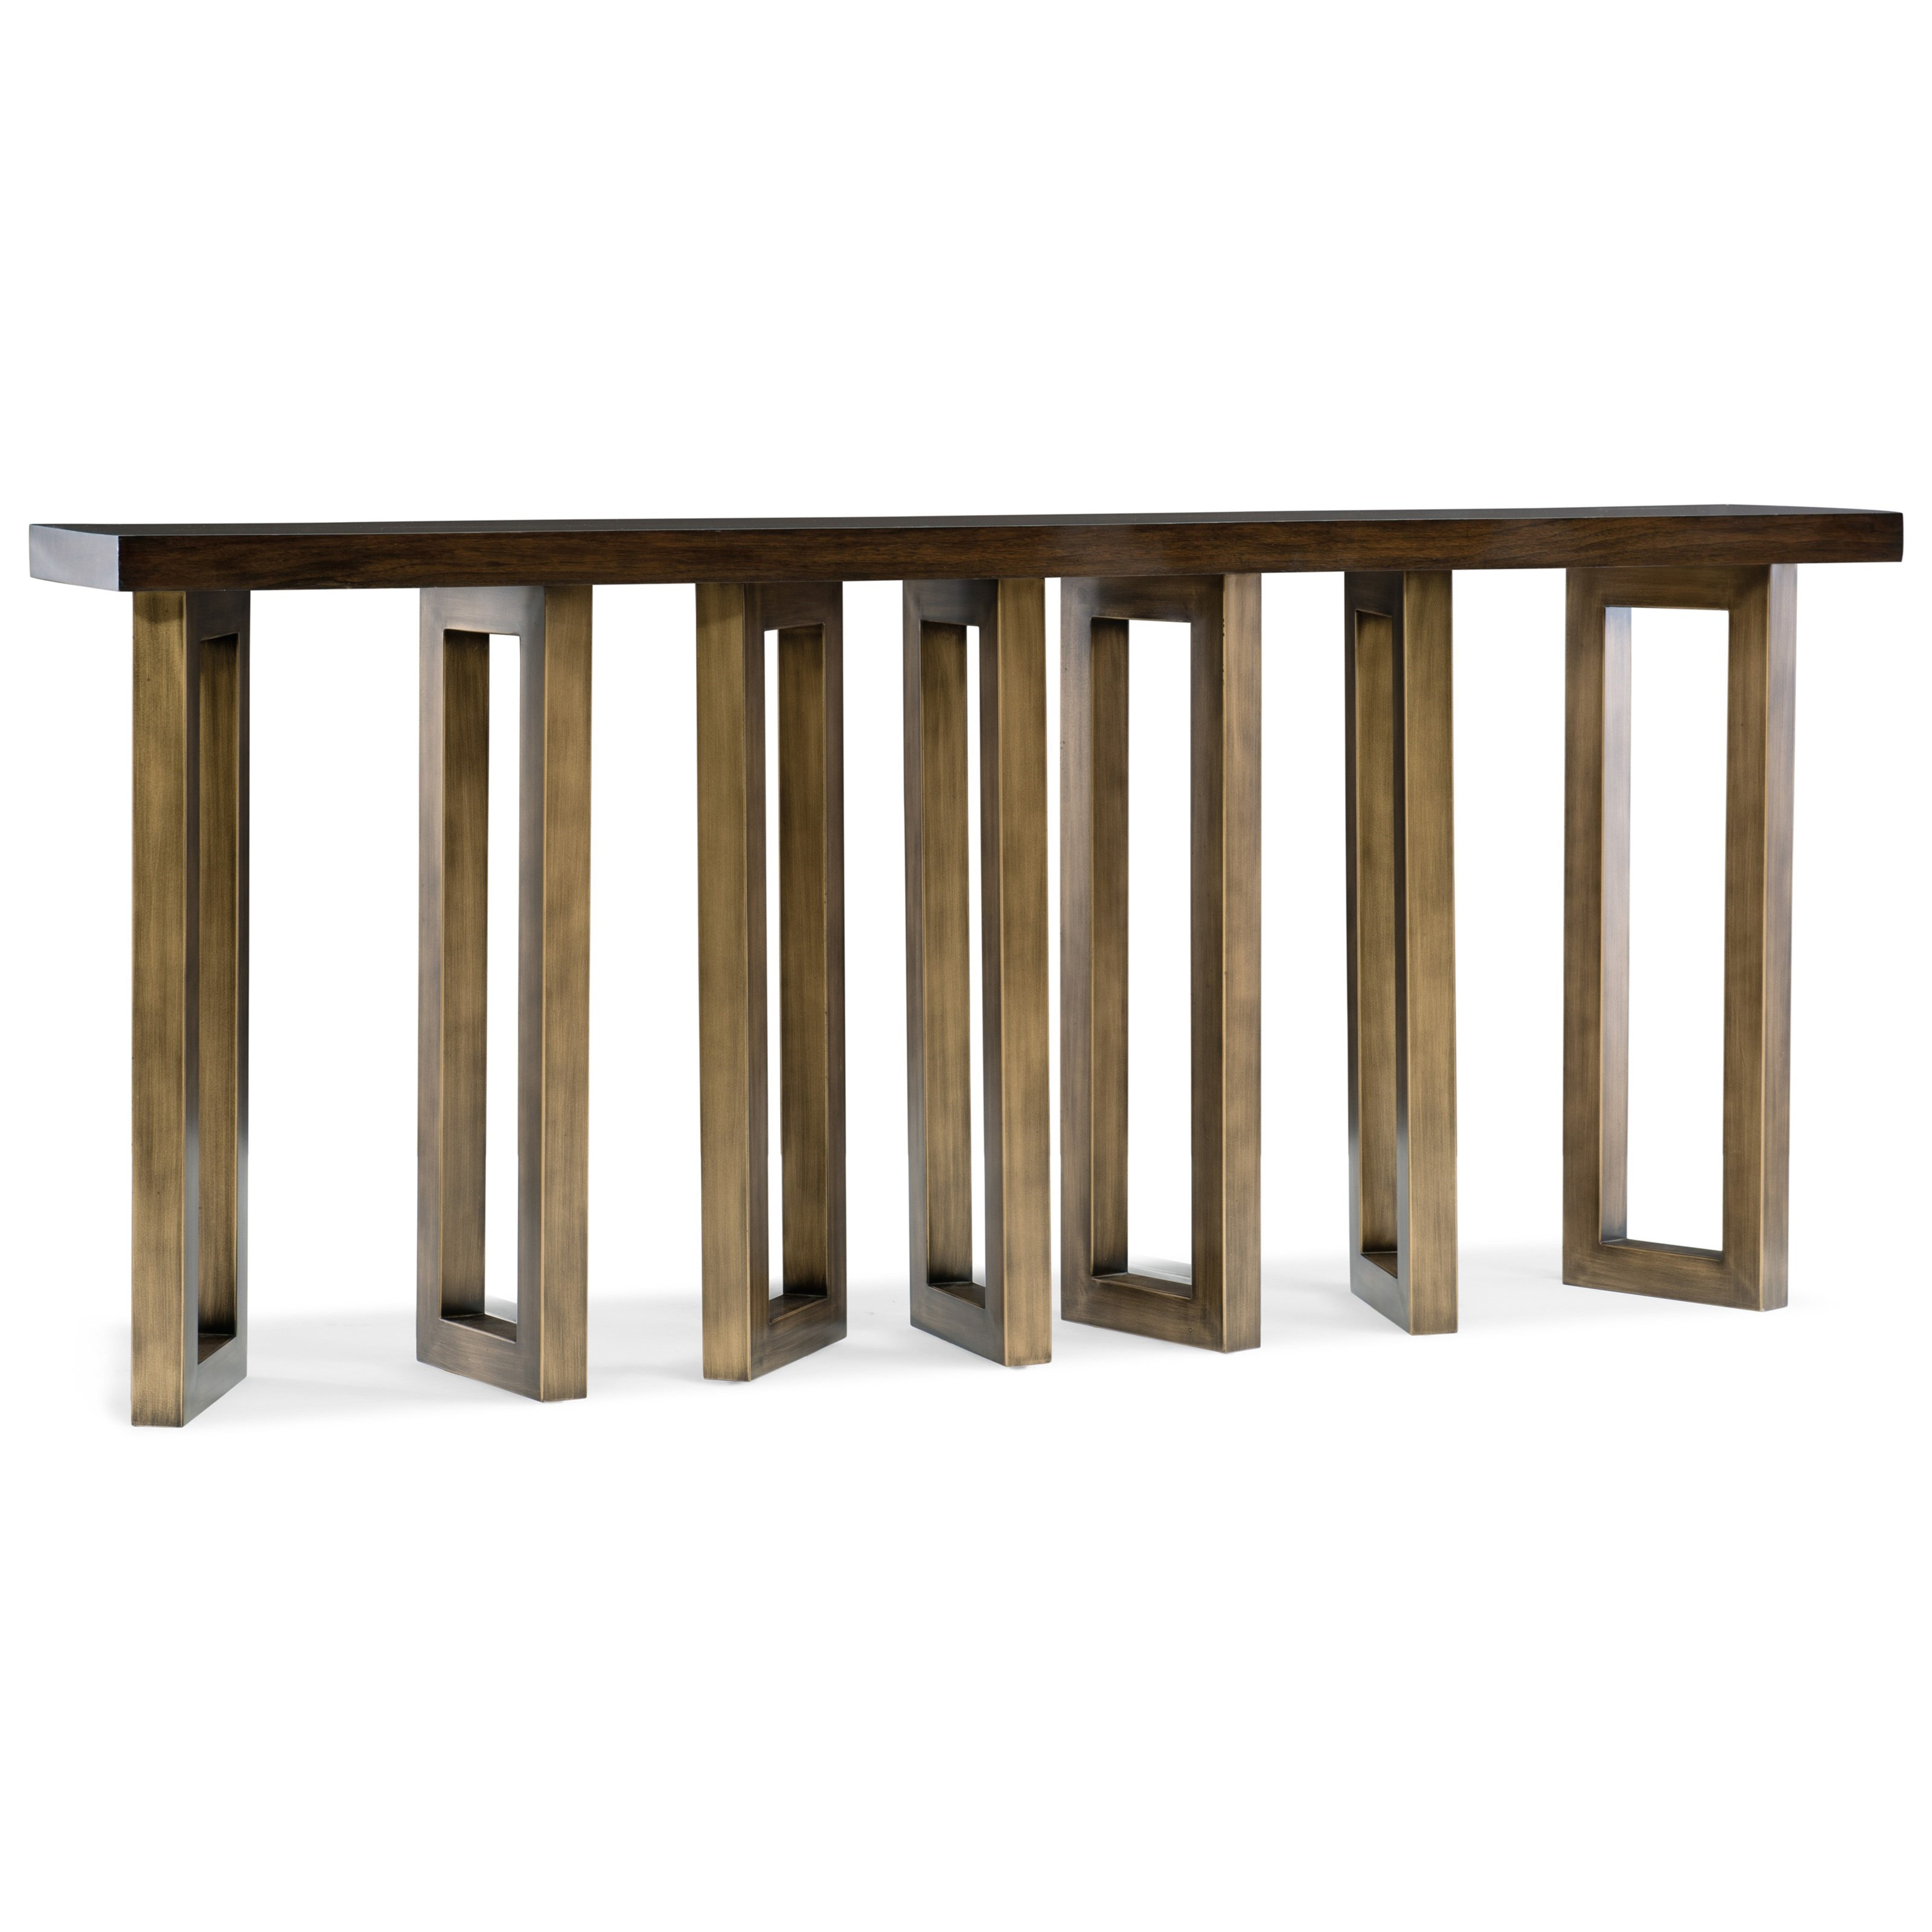 Mélange Connelly Hall Console by Hooker Furniture at Stoney Creek Furniture